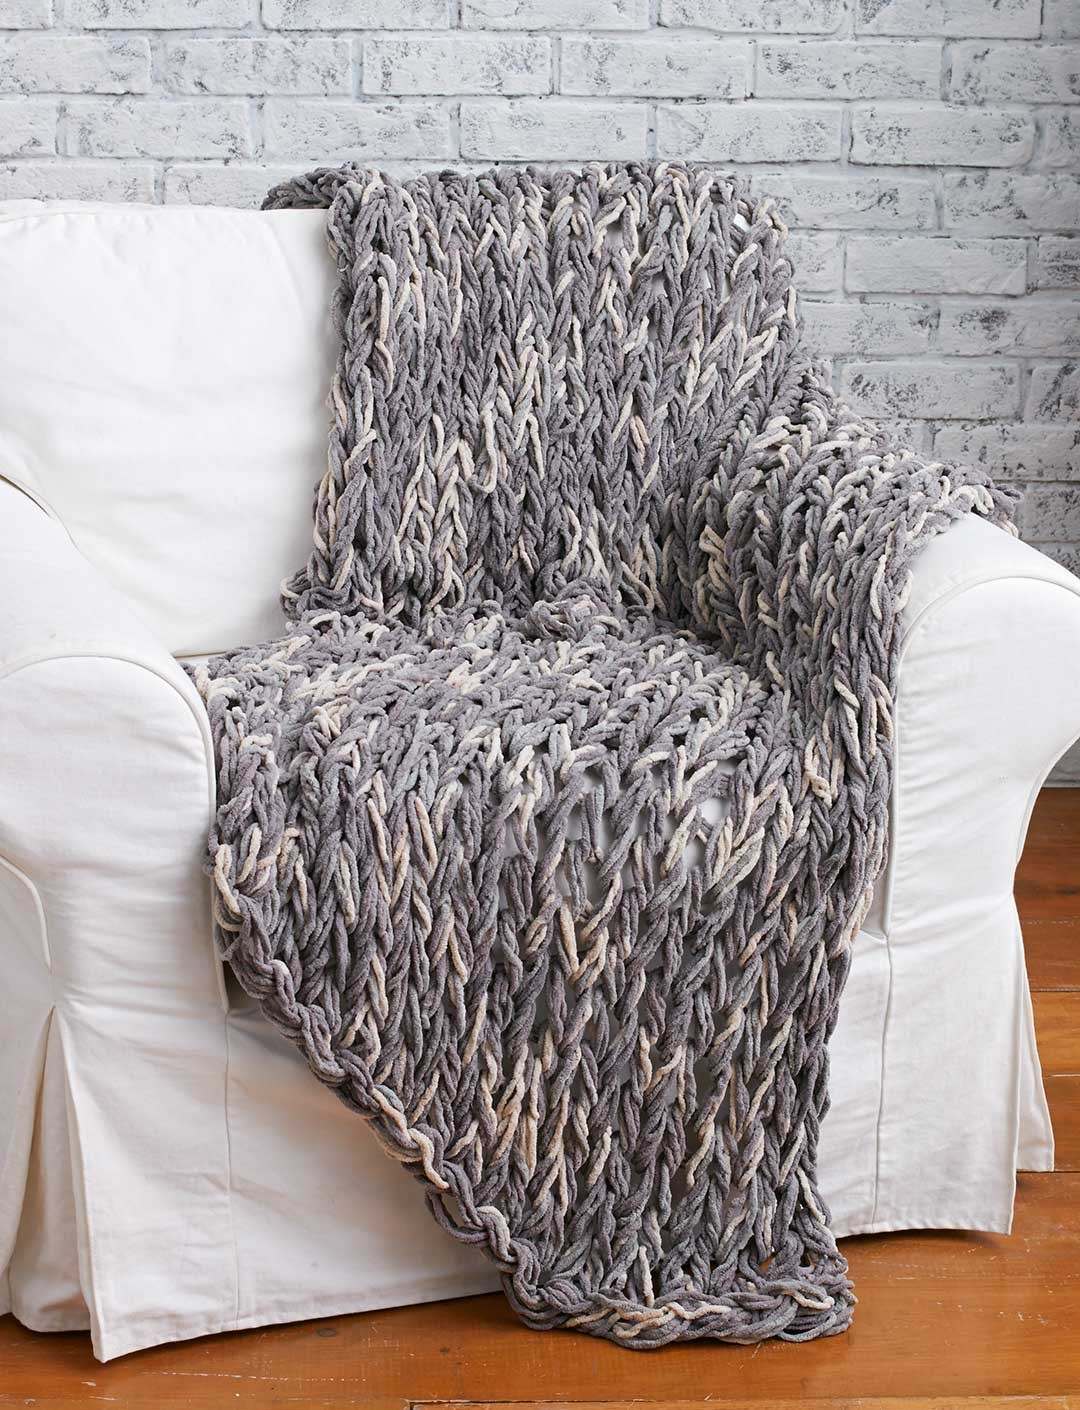 Free Knitting Pattern for Arm Knit 3 Hour Blanket